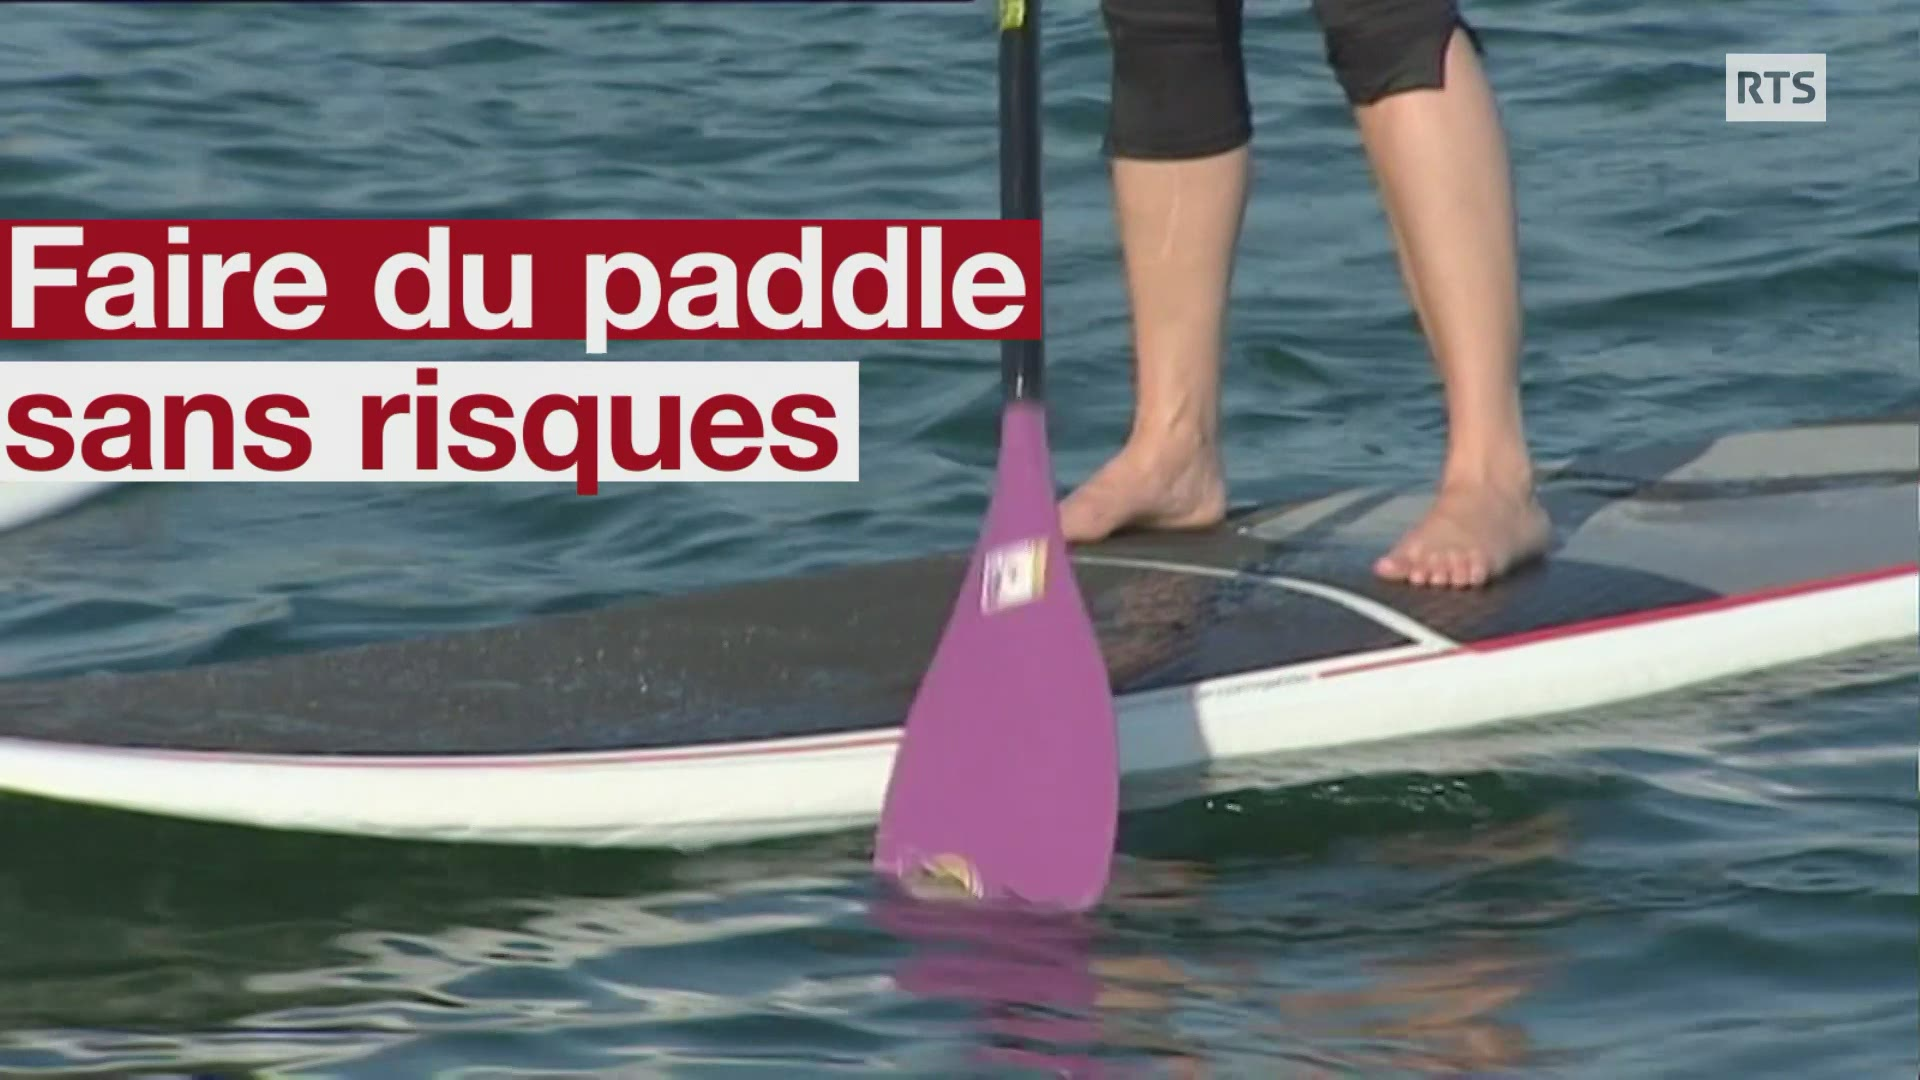 Faire du paddle sans risques